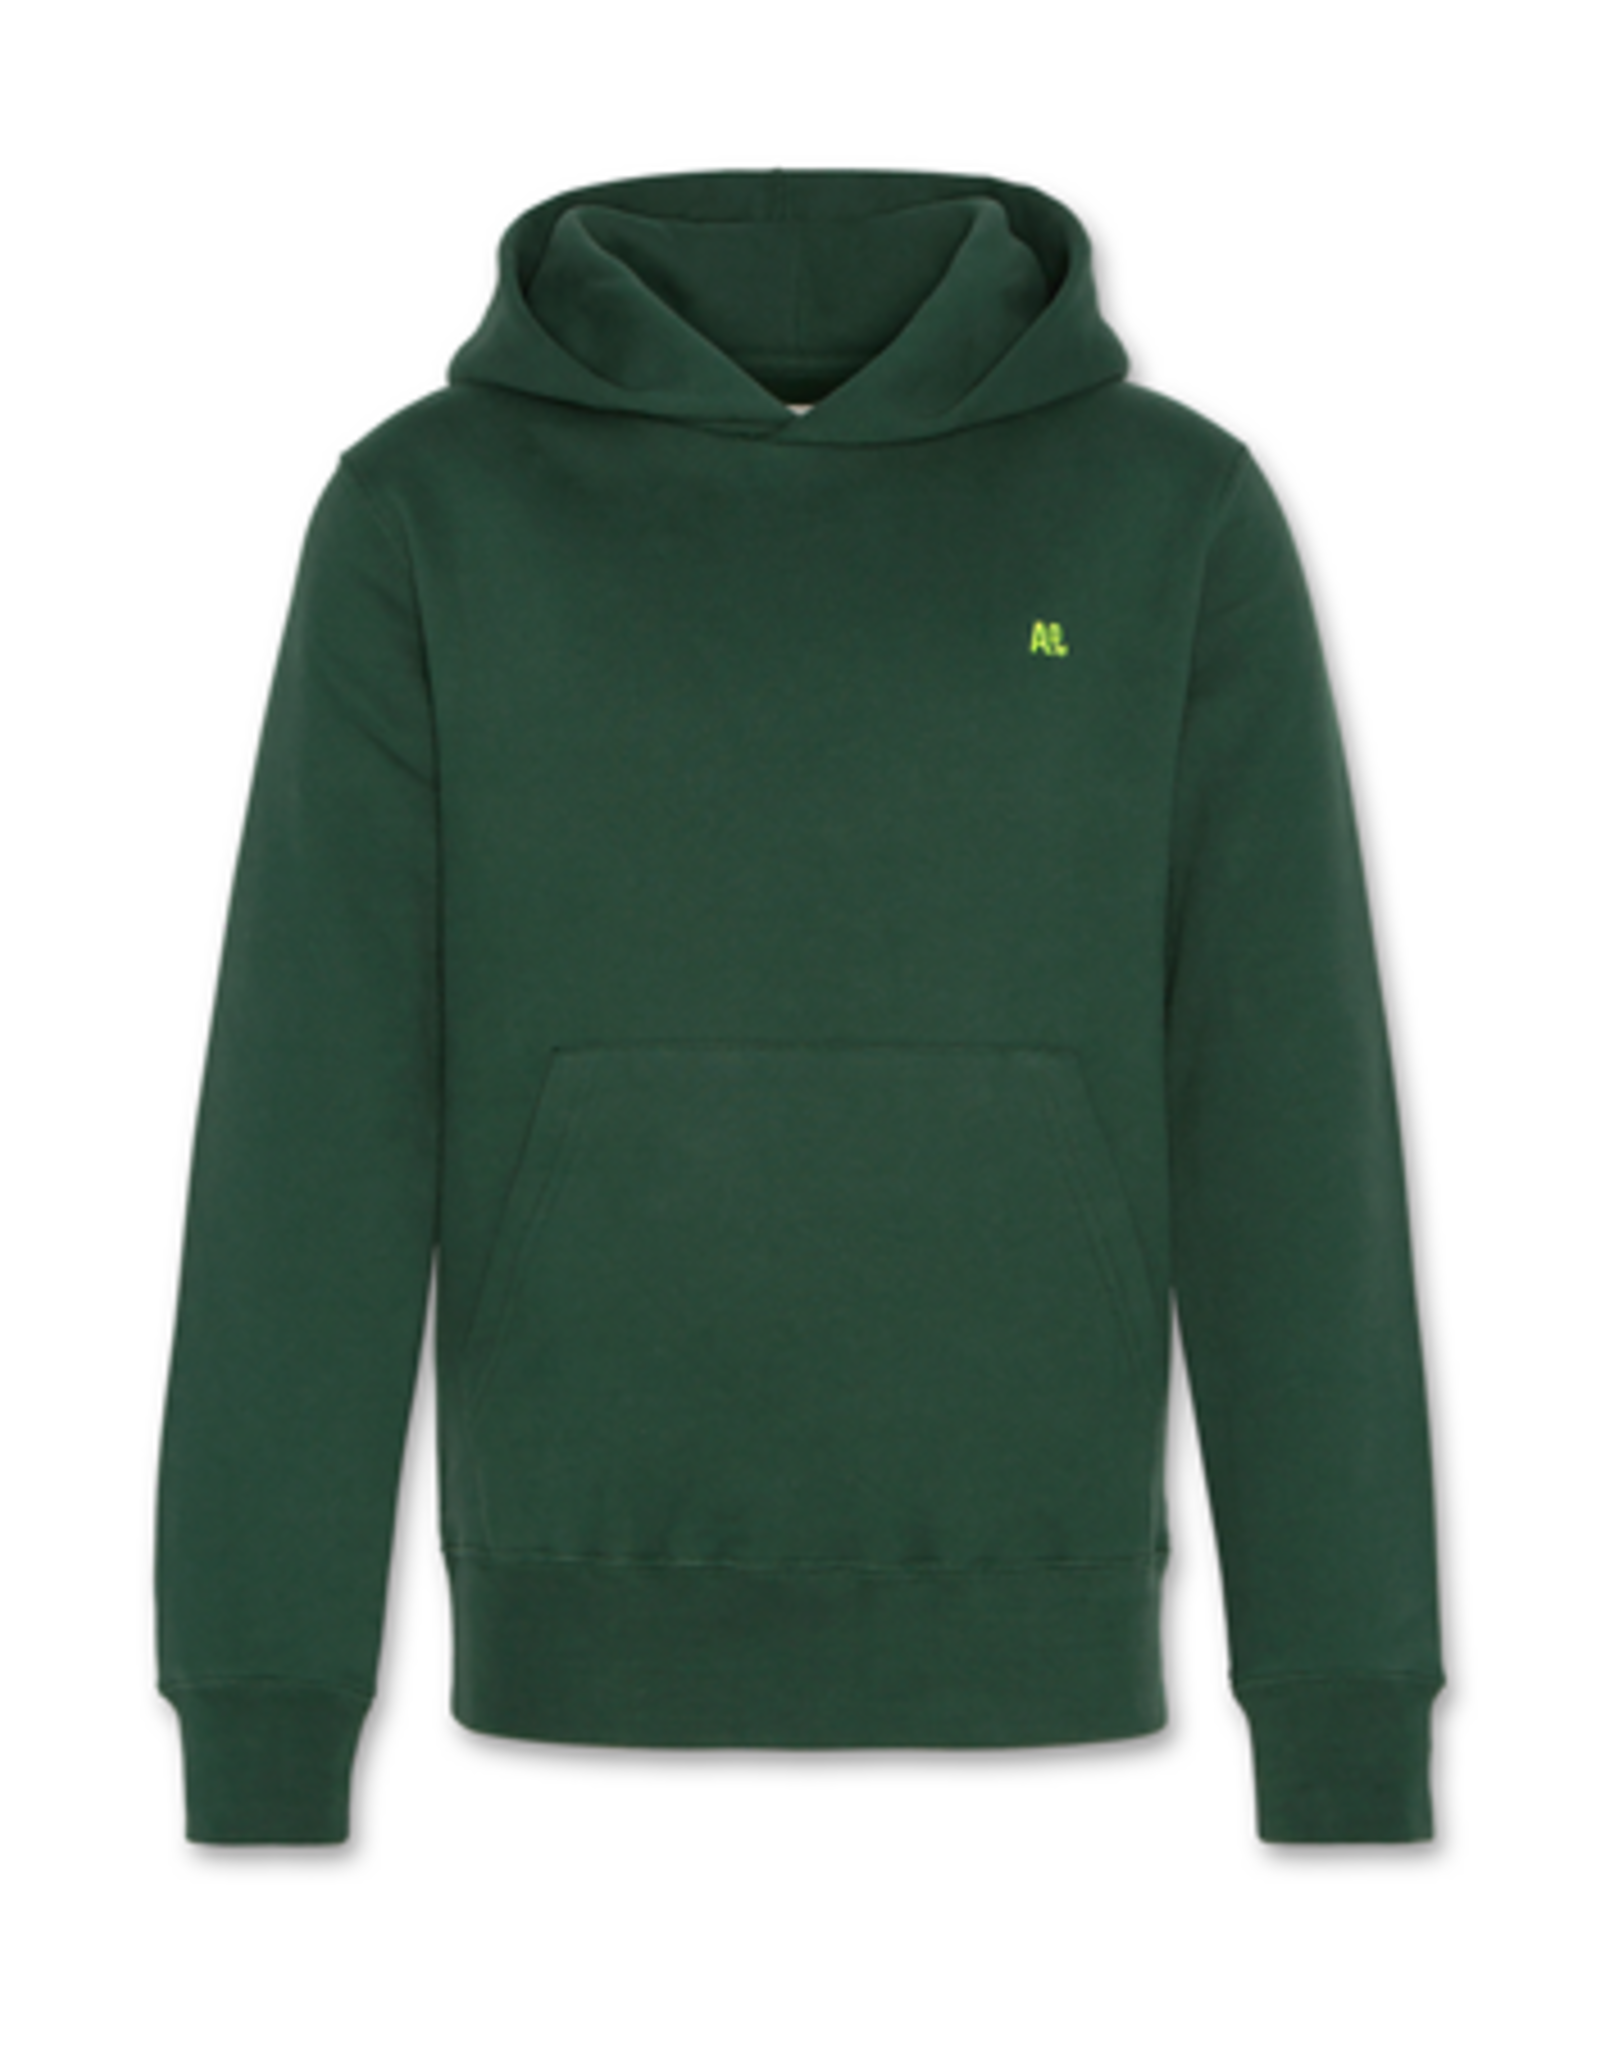 American Outfitters Ao hoodie sweater Arctic Green